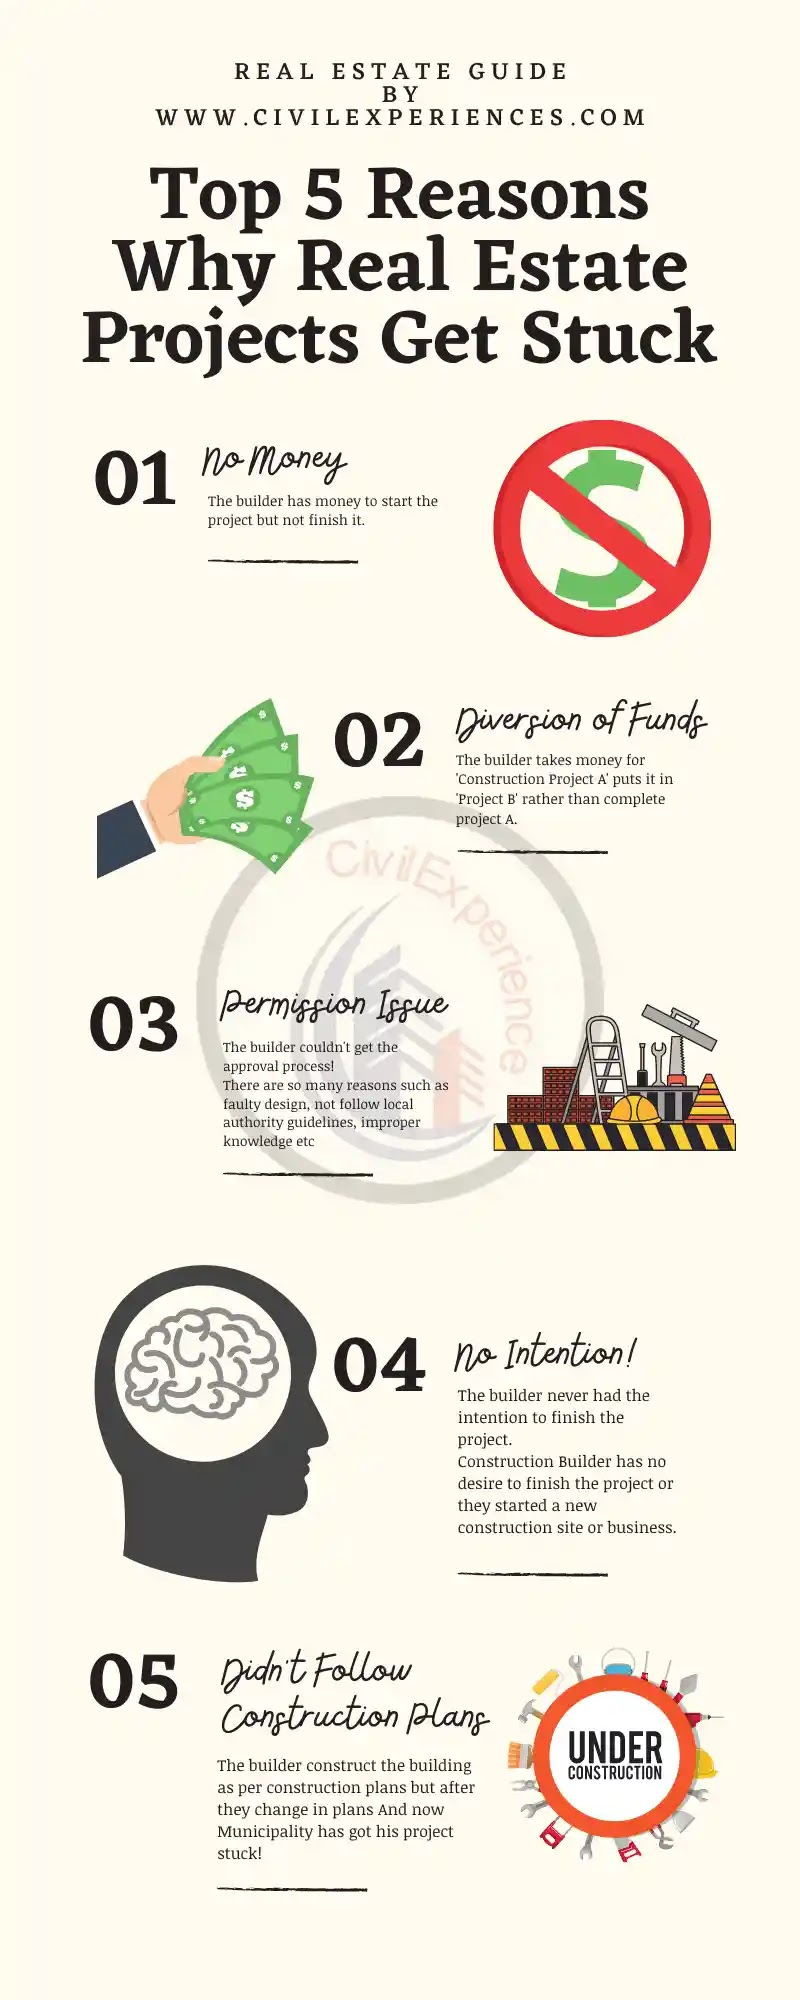 Top 5 Reasons Why Real Estate Projects Get Stuck infography